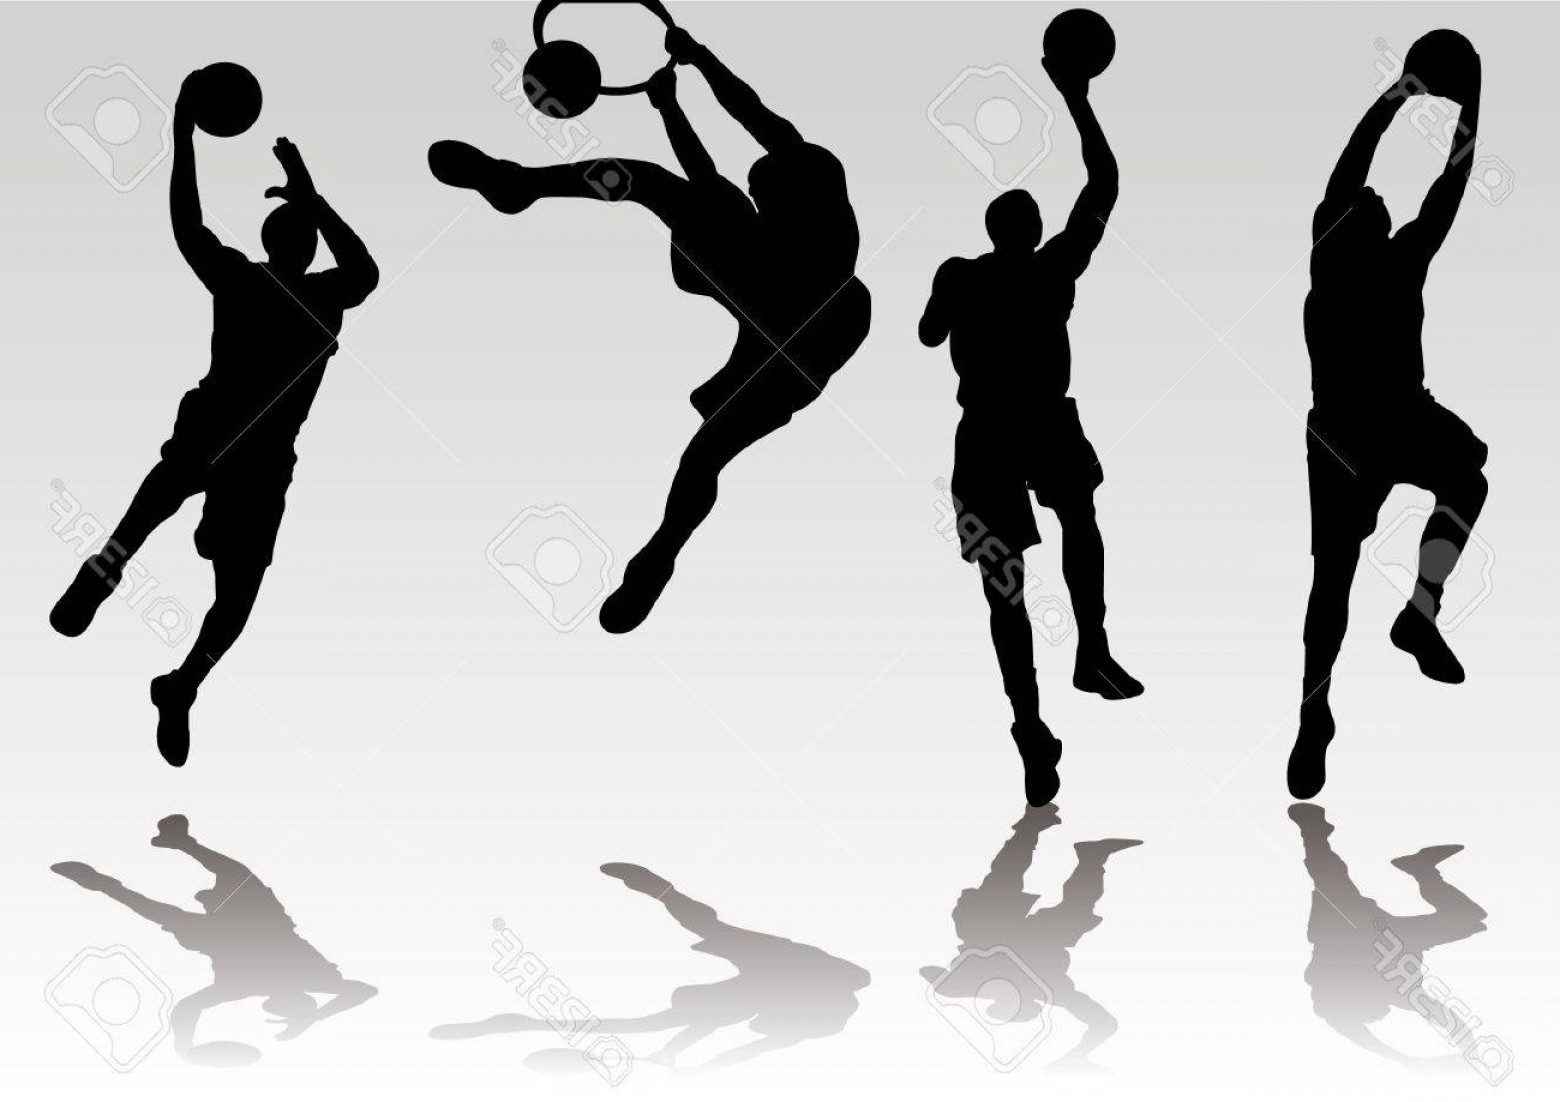 Dunking Basketball Silhouette Vector: Photostock Vector Basketball Player Slam Dunk And Rebound Shadow Silhouette